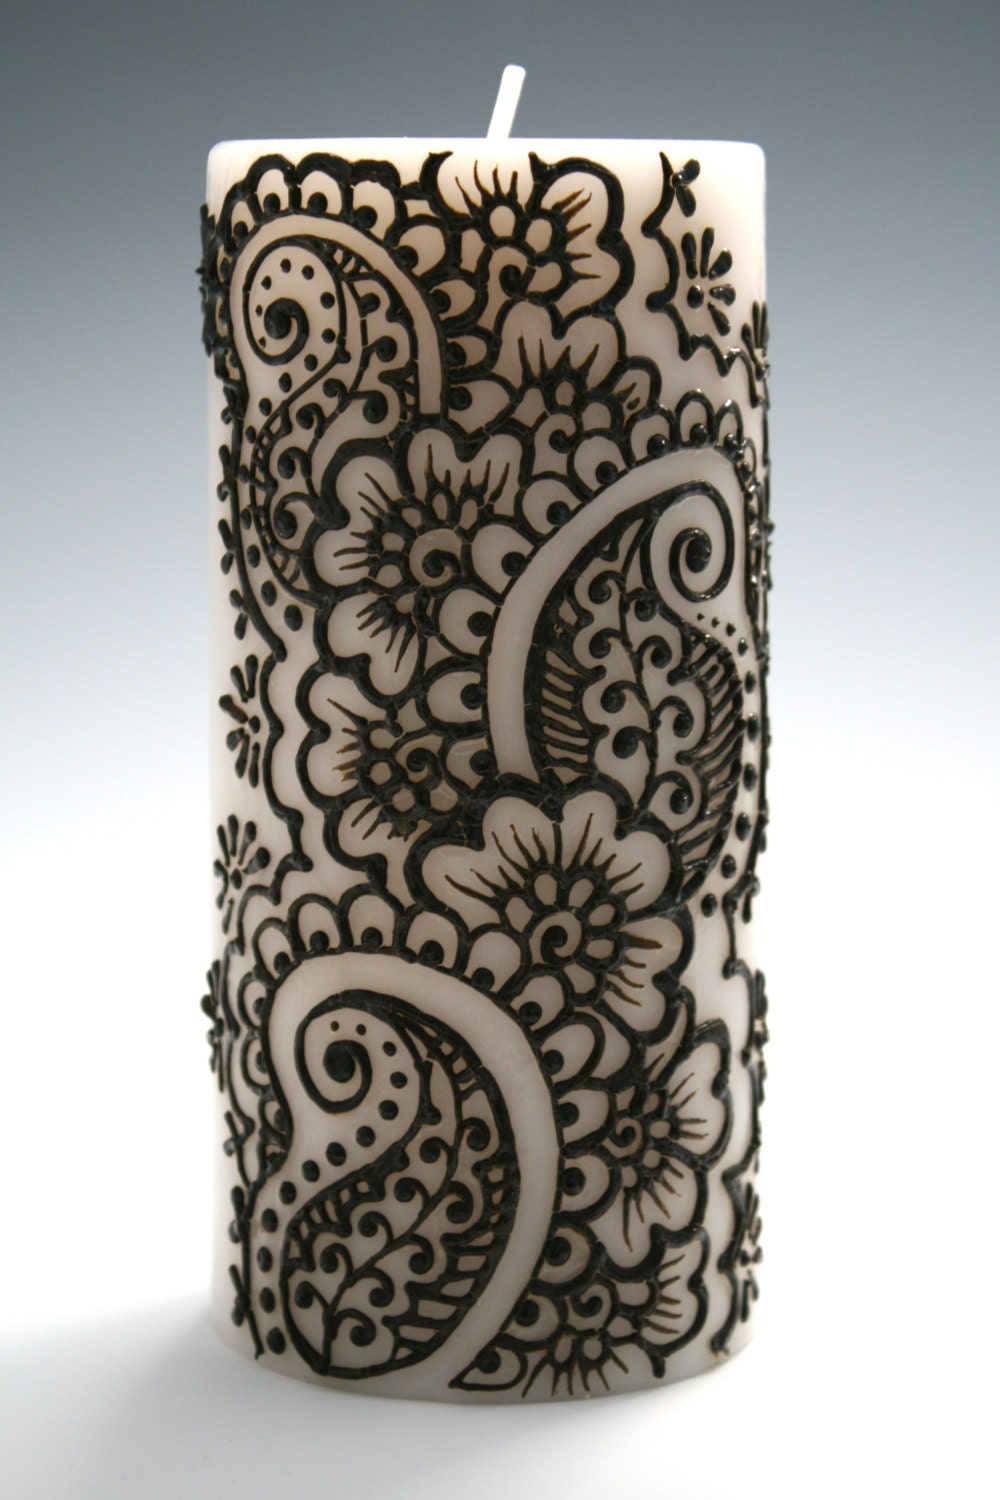 Henna Candle With Intricate Indian Style Design Paisley And